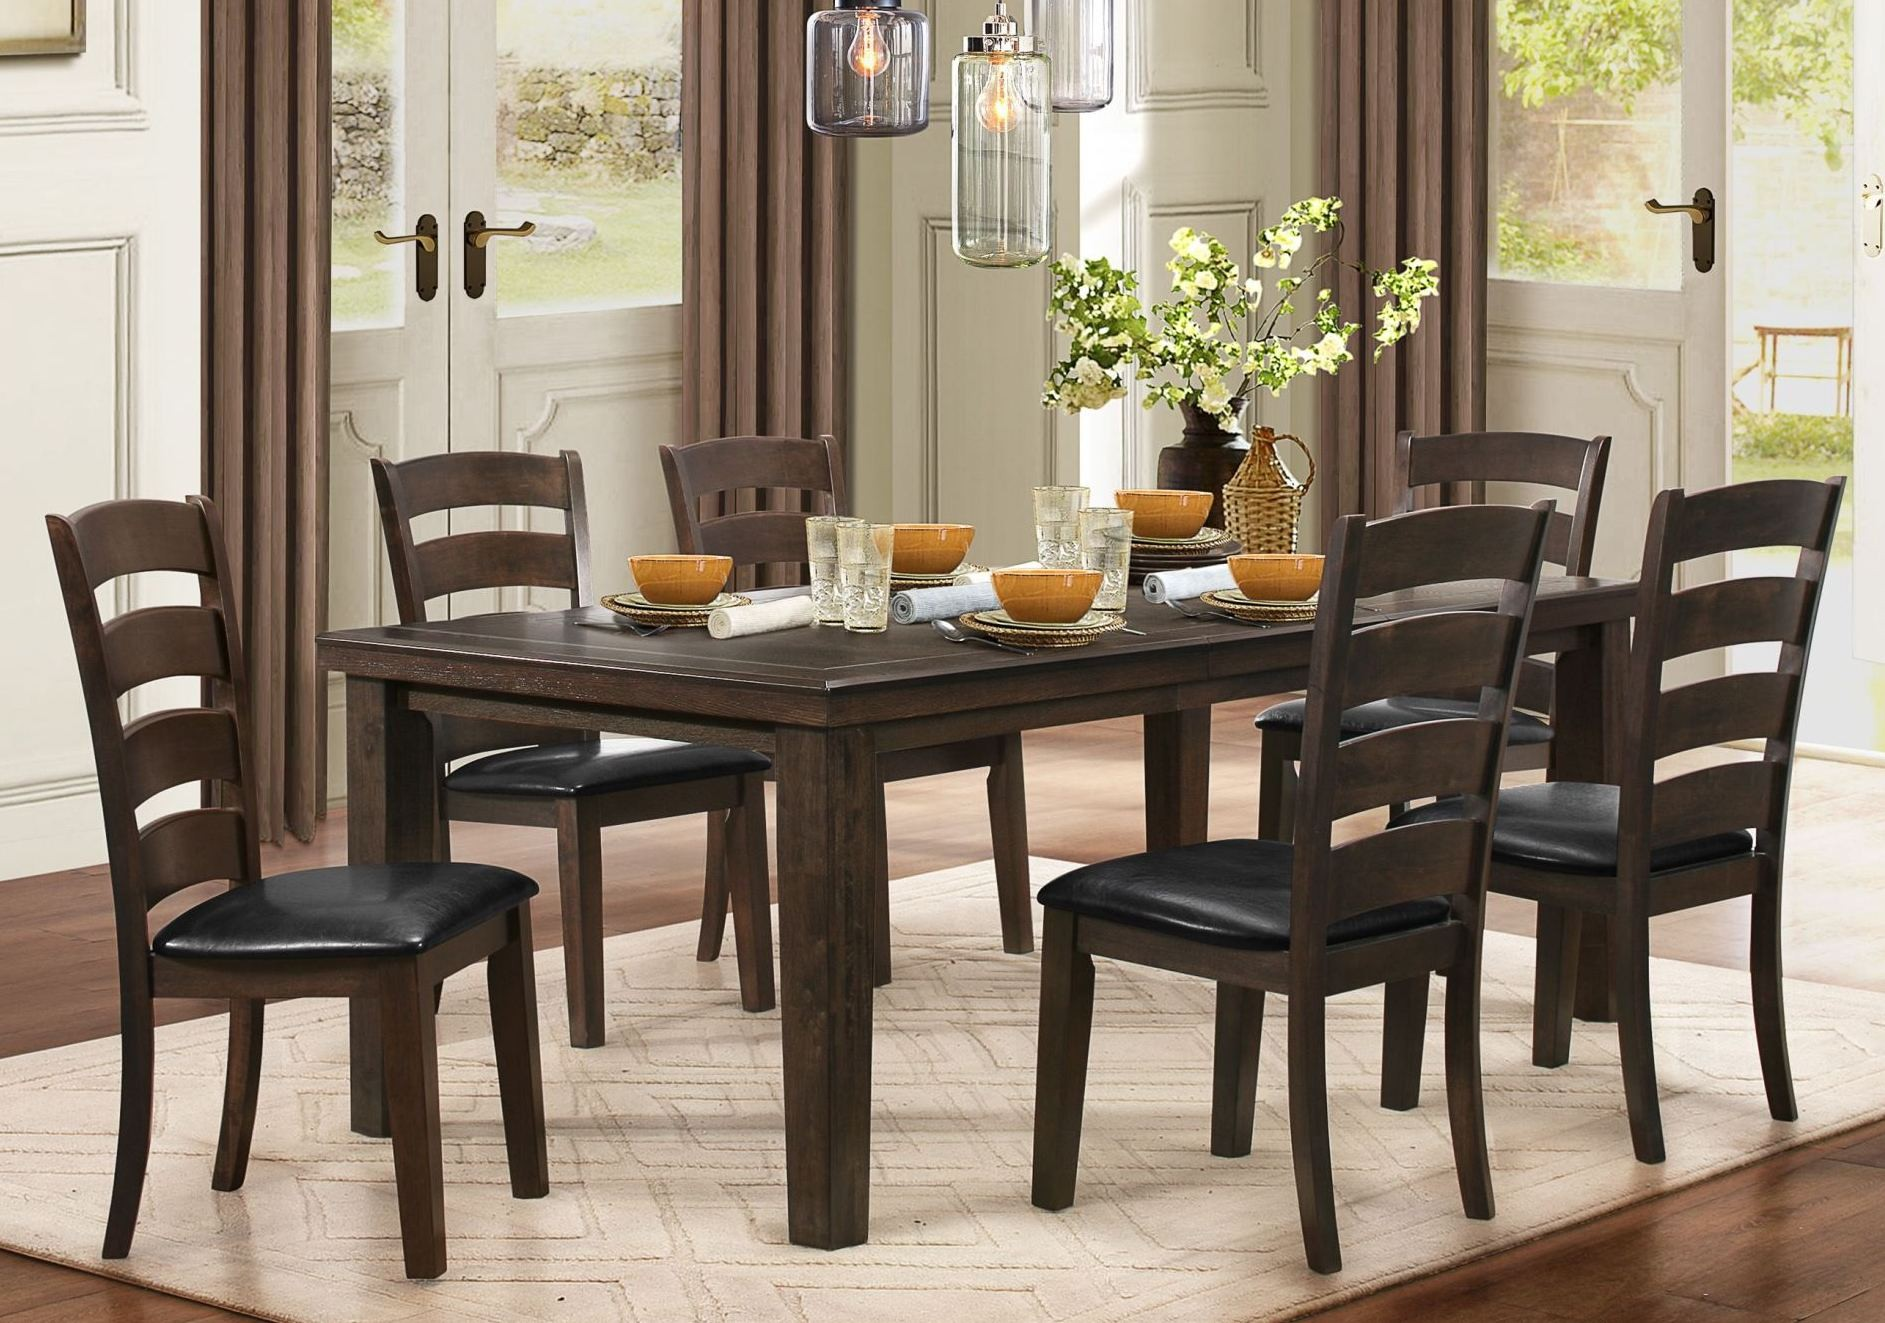 Pacific grove brown extendable dining room set from for Brown dining room set